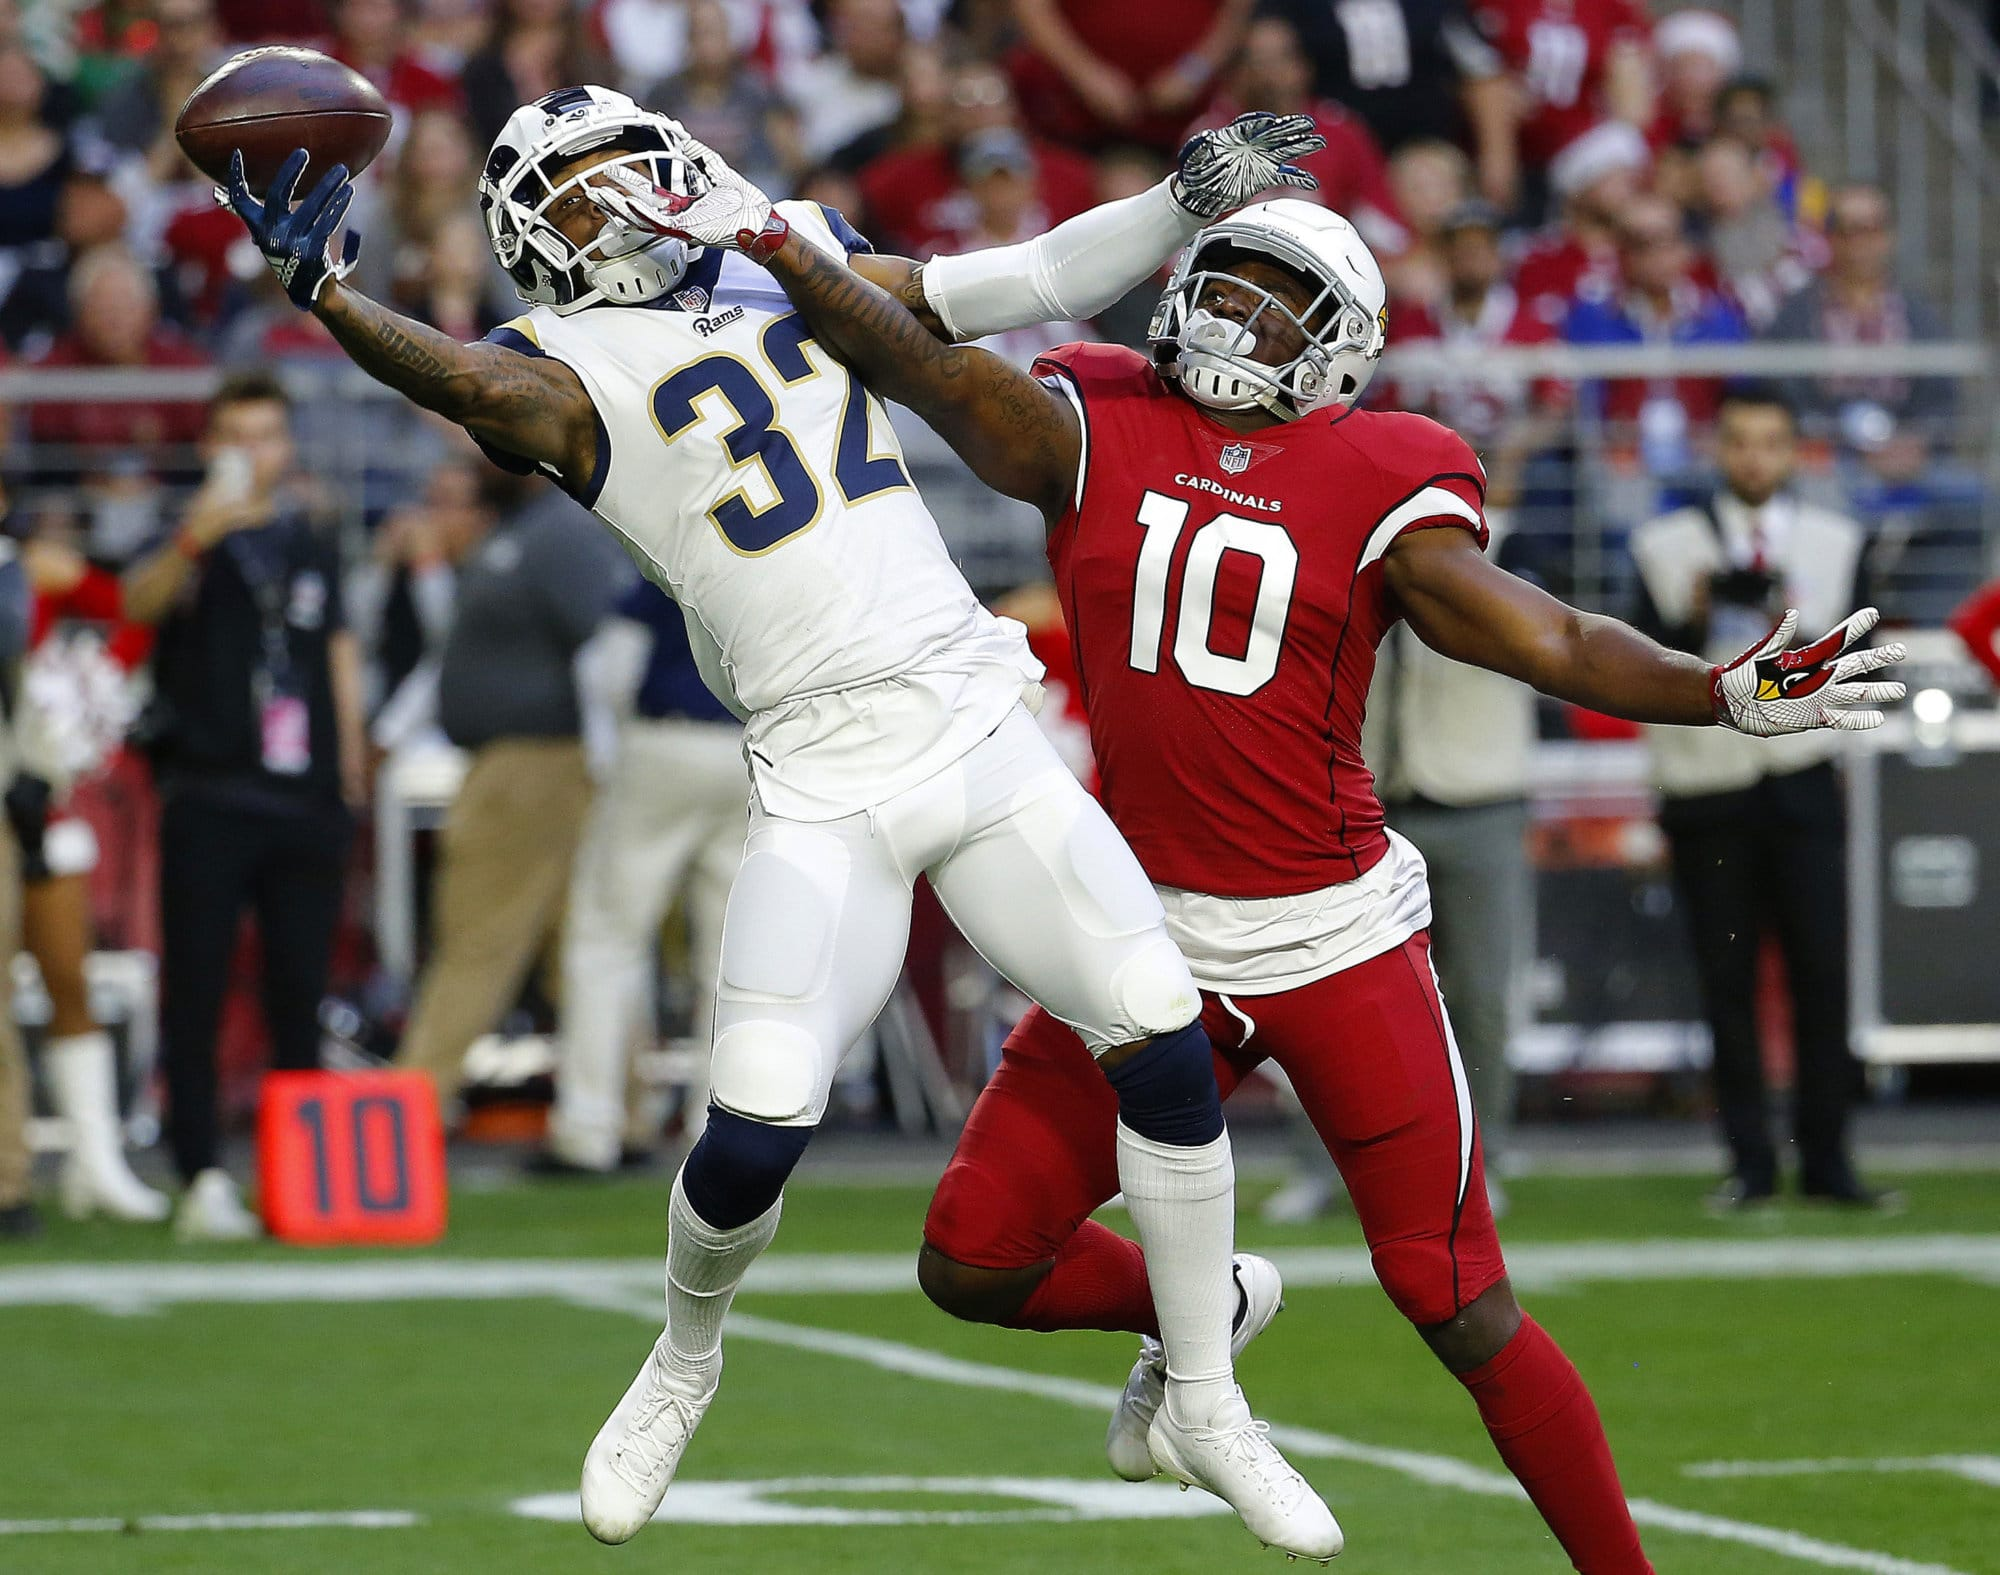 Los Angeles Rams cornerback Troy Hill (32) can't make the catch Arizona Cardinals wide receiver Chad Williams (10) defends during the second half of an NFL football game, Sunday, Dec. 23, 2018, in Glendale, Ariz. (AP Photo/Rick Scuteri)